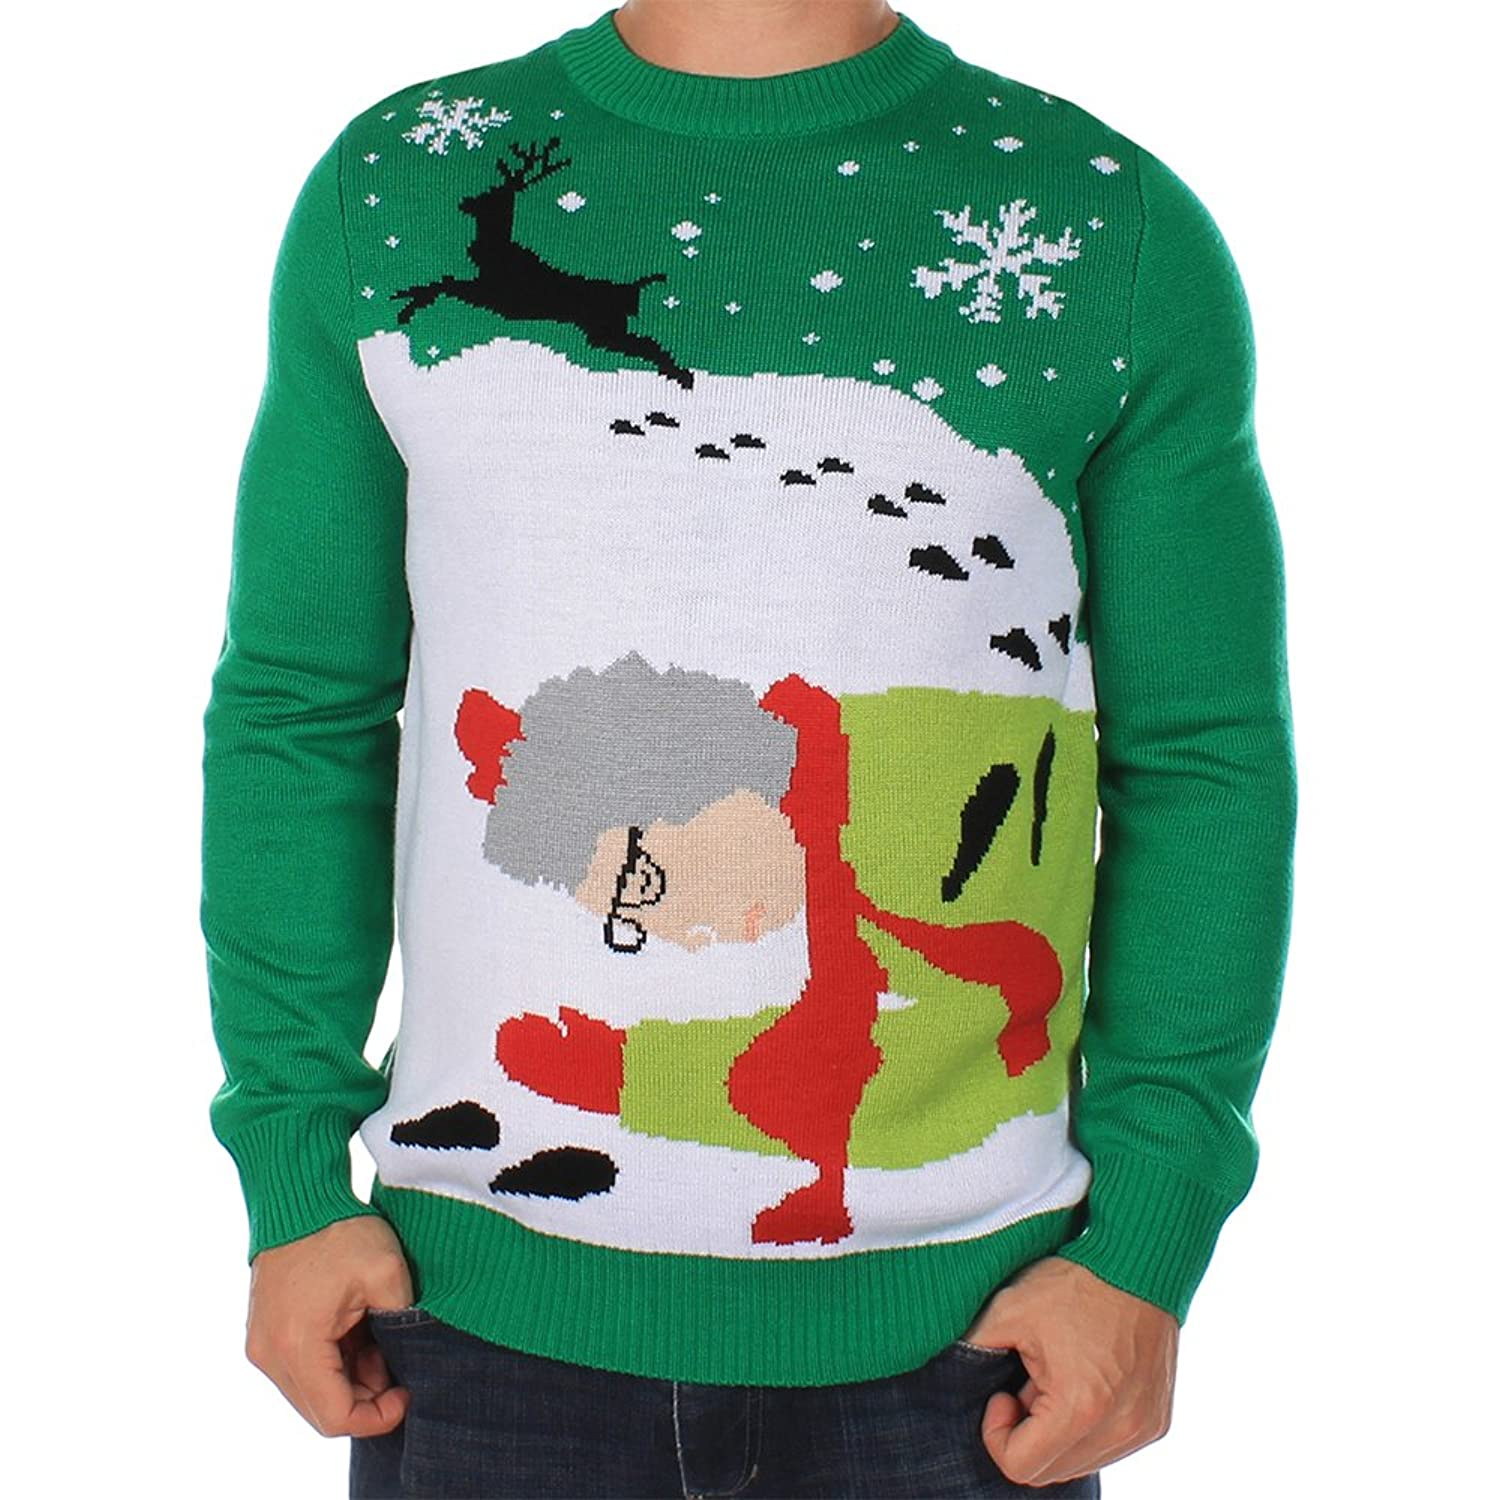 Amazon.com: Men's Ugly Christmas Sweater - Grandma Got Run Over By ...